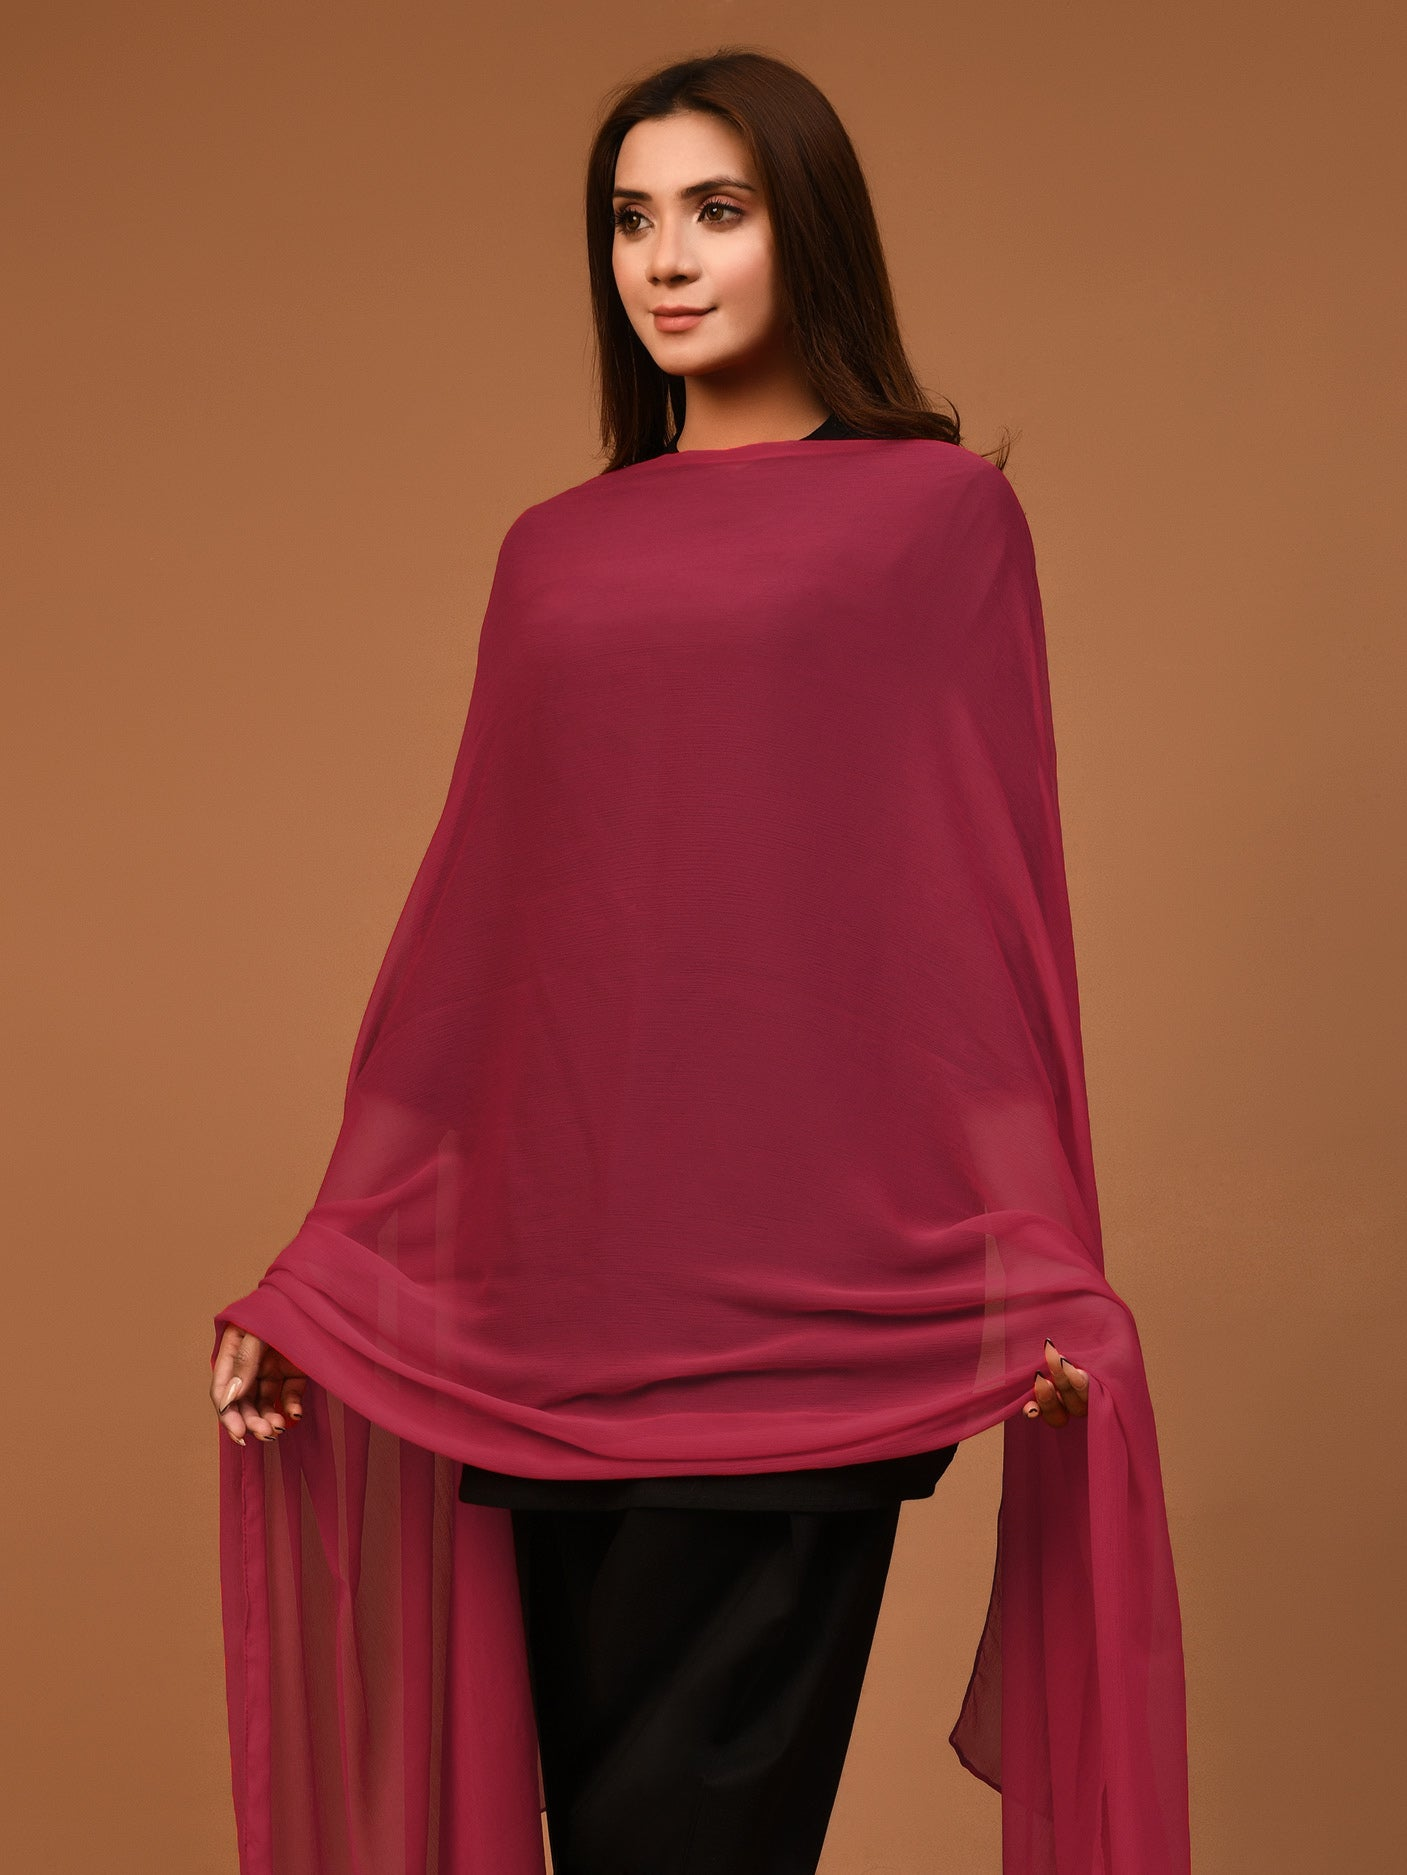 Chiffon Dupatta - Ruby Red